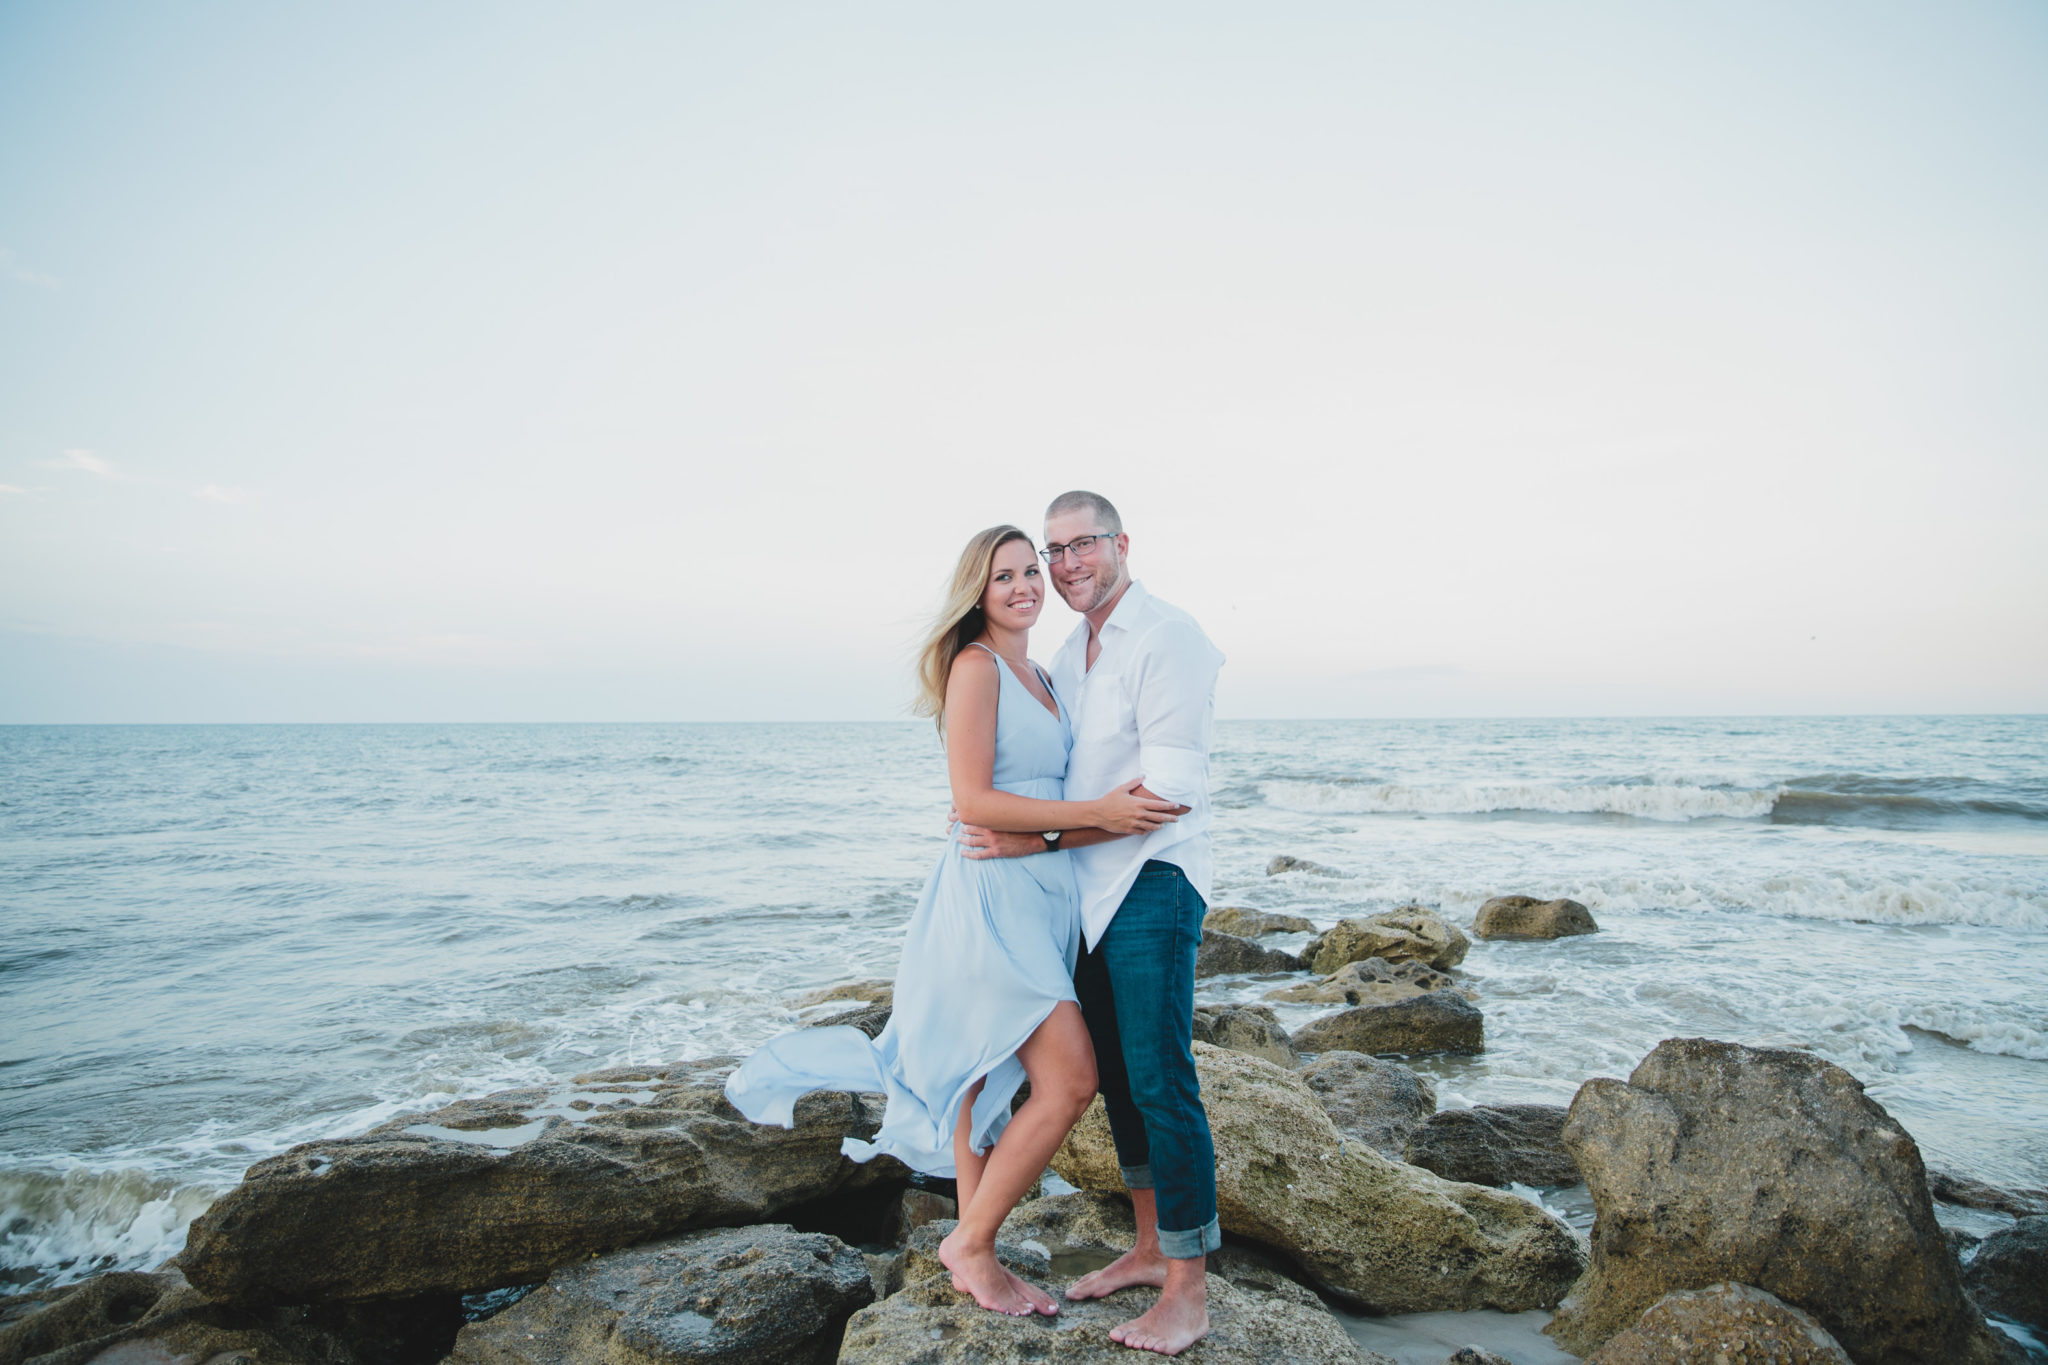 couple on rocks at beach during engagement session